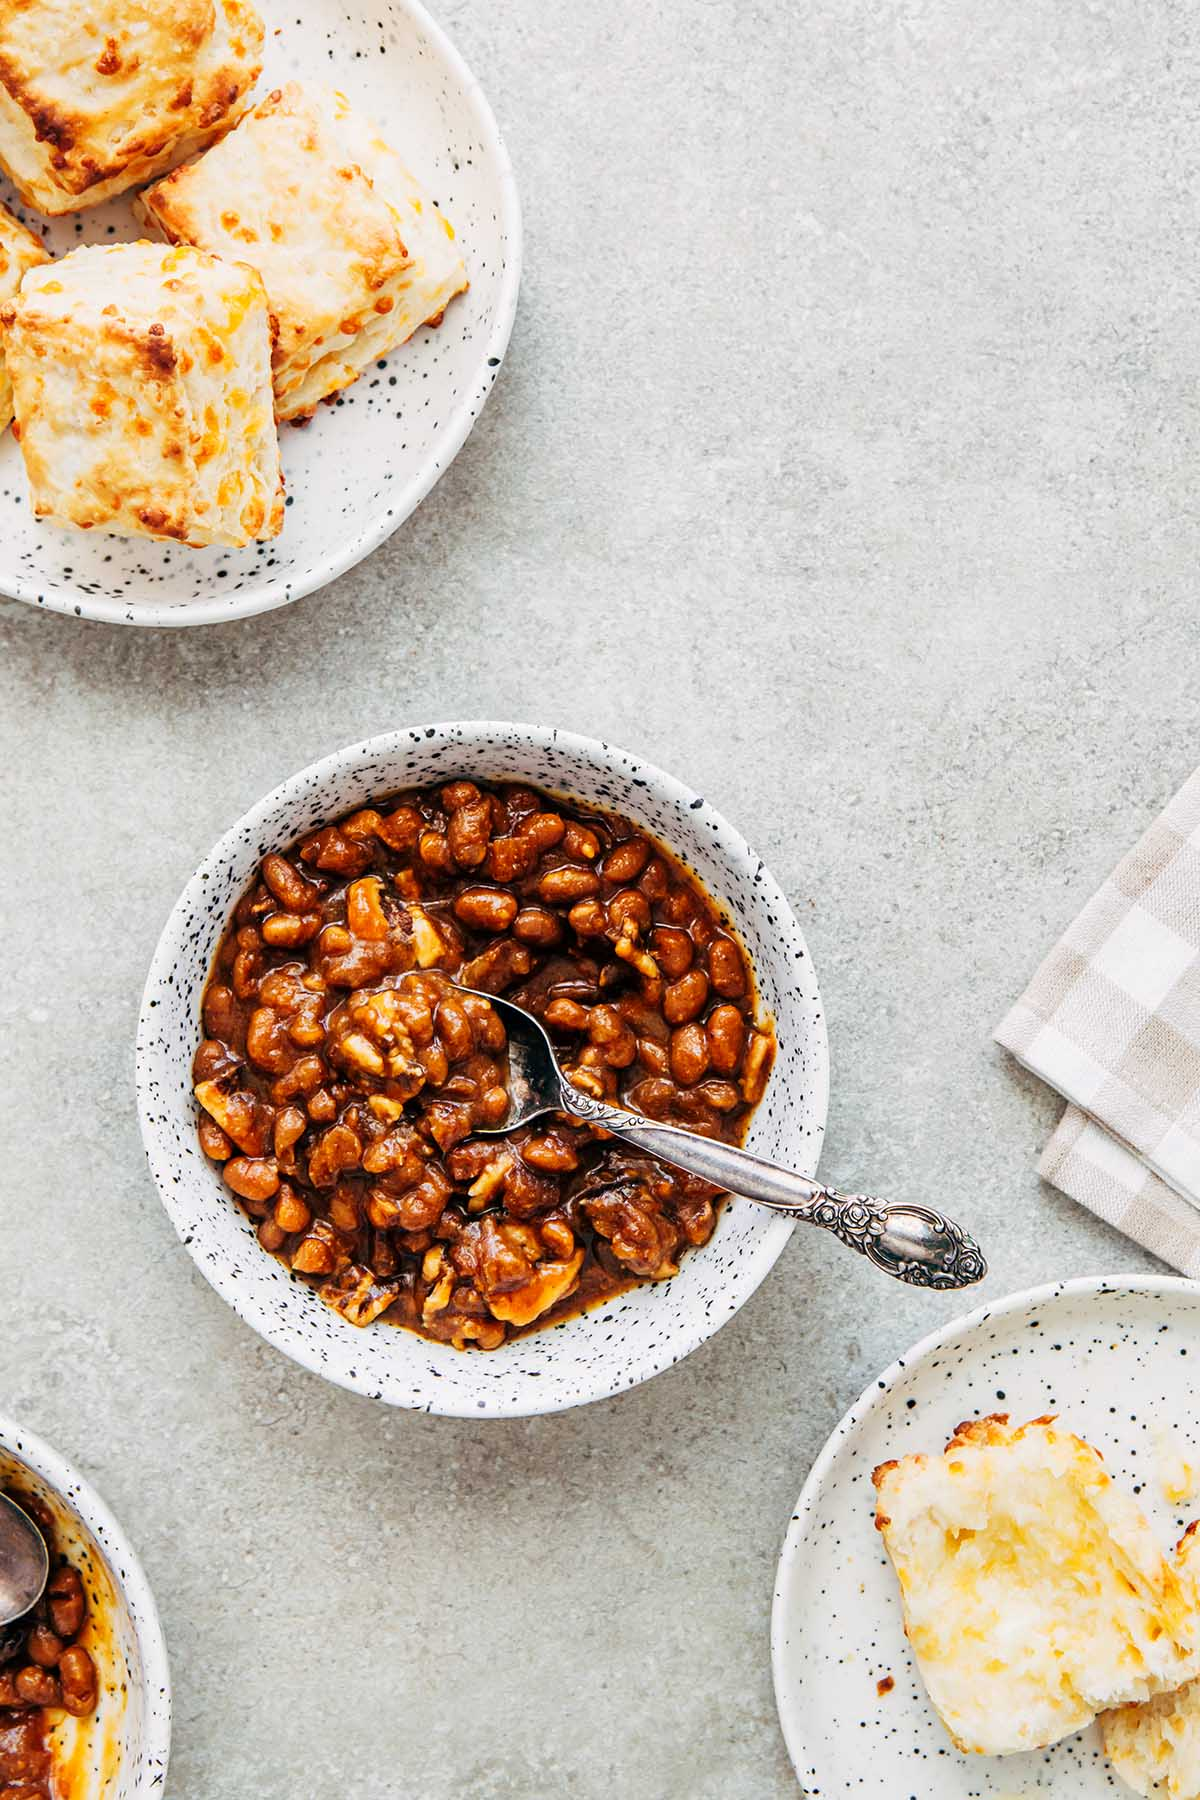 Bowls of homemade molasses baked beans and plates of cheese tea biscuits on the side.